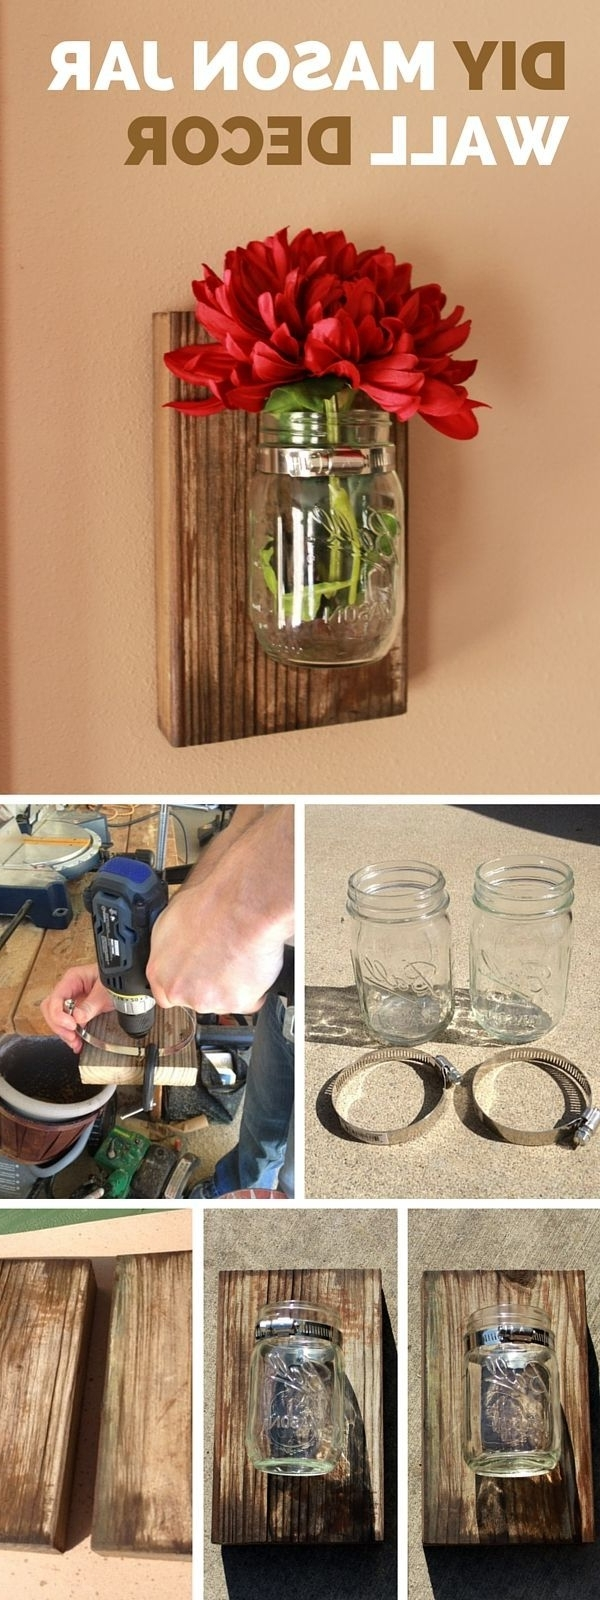 Well Known Mason Jar Wall Art Within Check Out The Tutorial: #diy Mason Jar Wall Decor #crafts #homedecor (View 14 of 15)